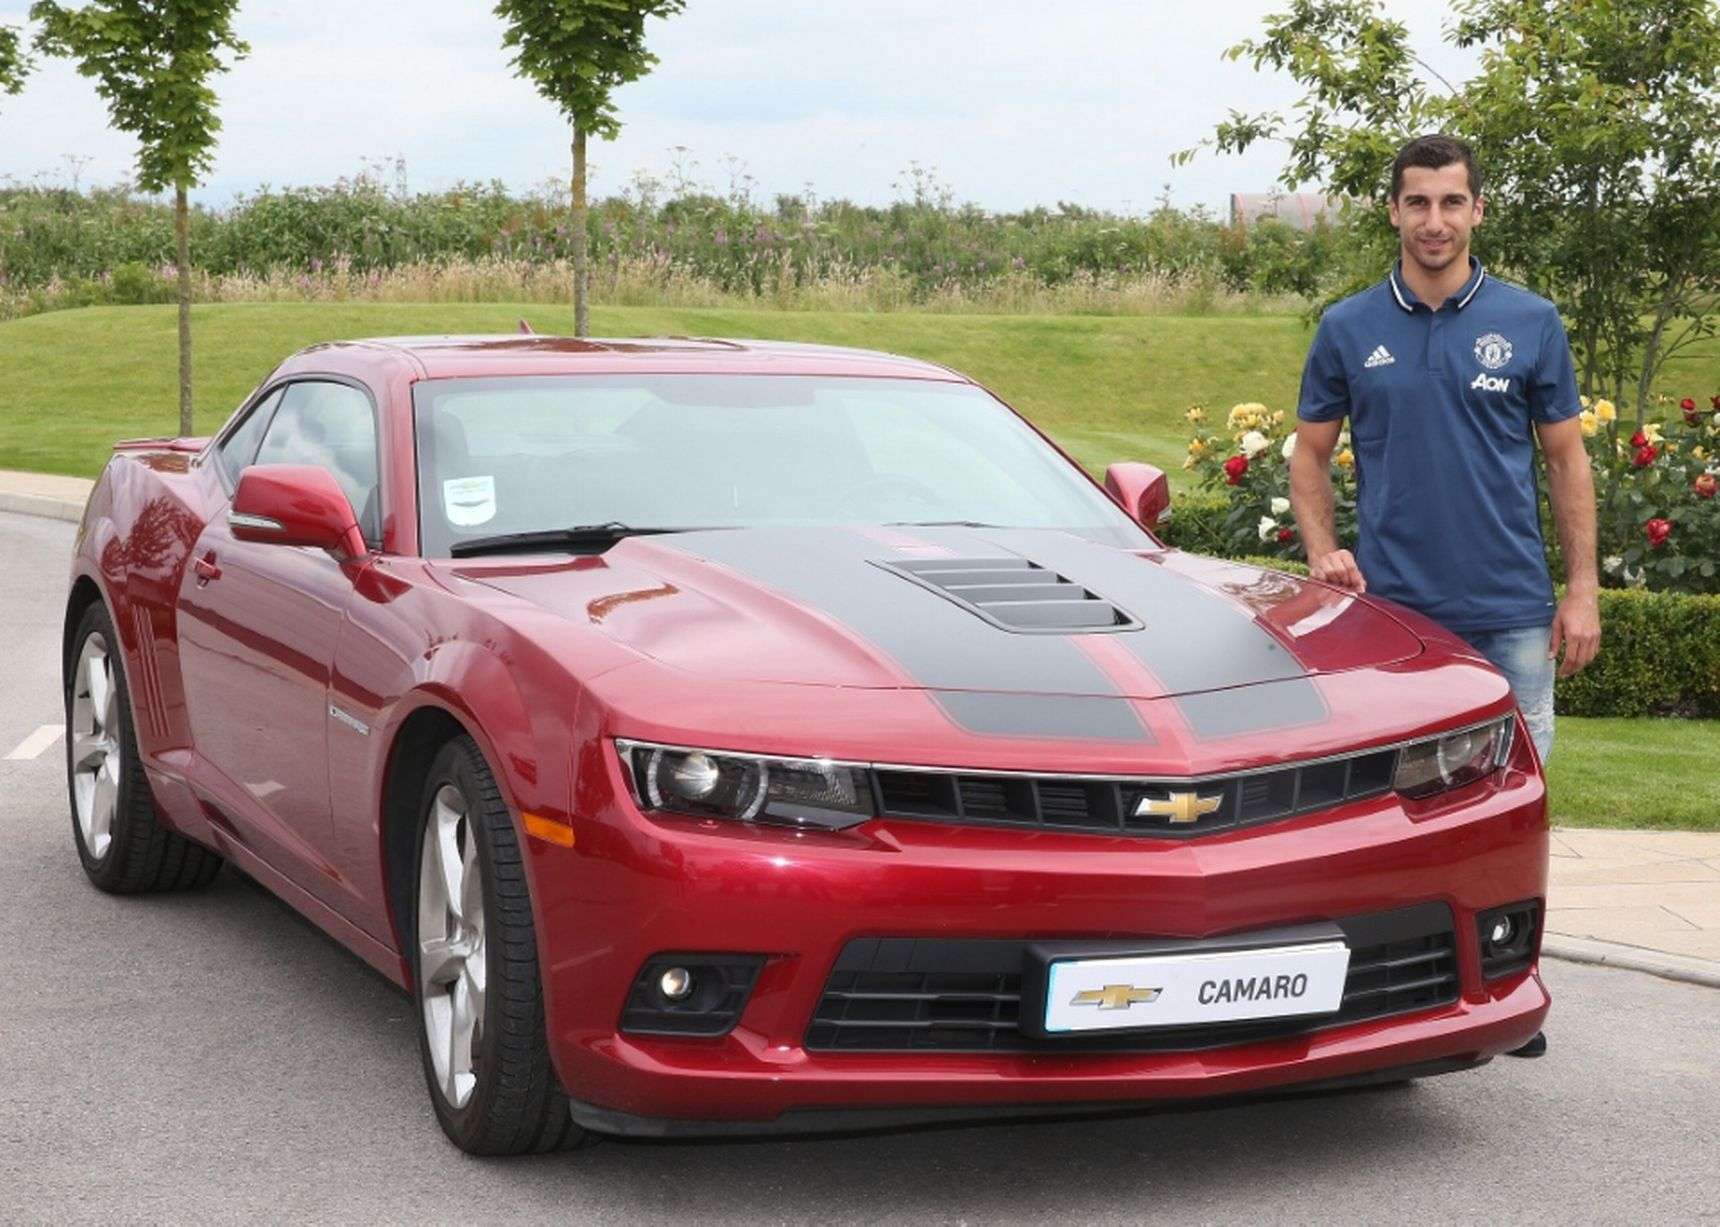 Henrikh Mkhitaryan of Manchester United poses with a Chevrolet car